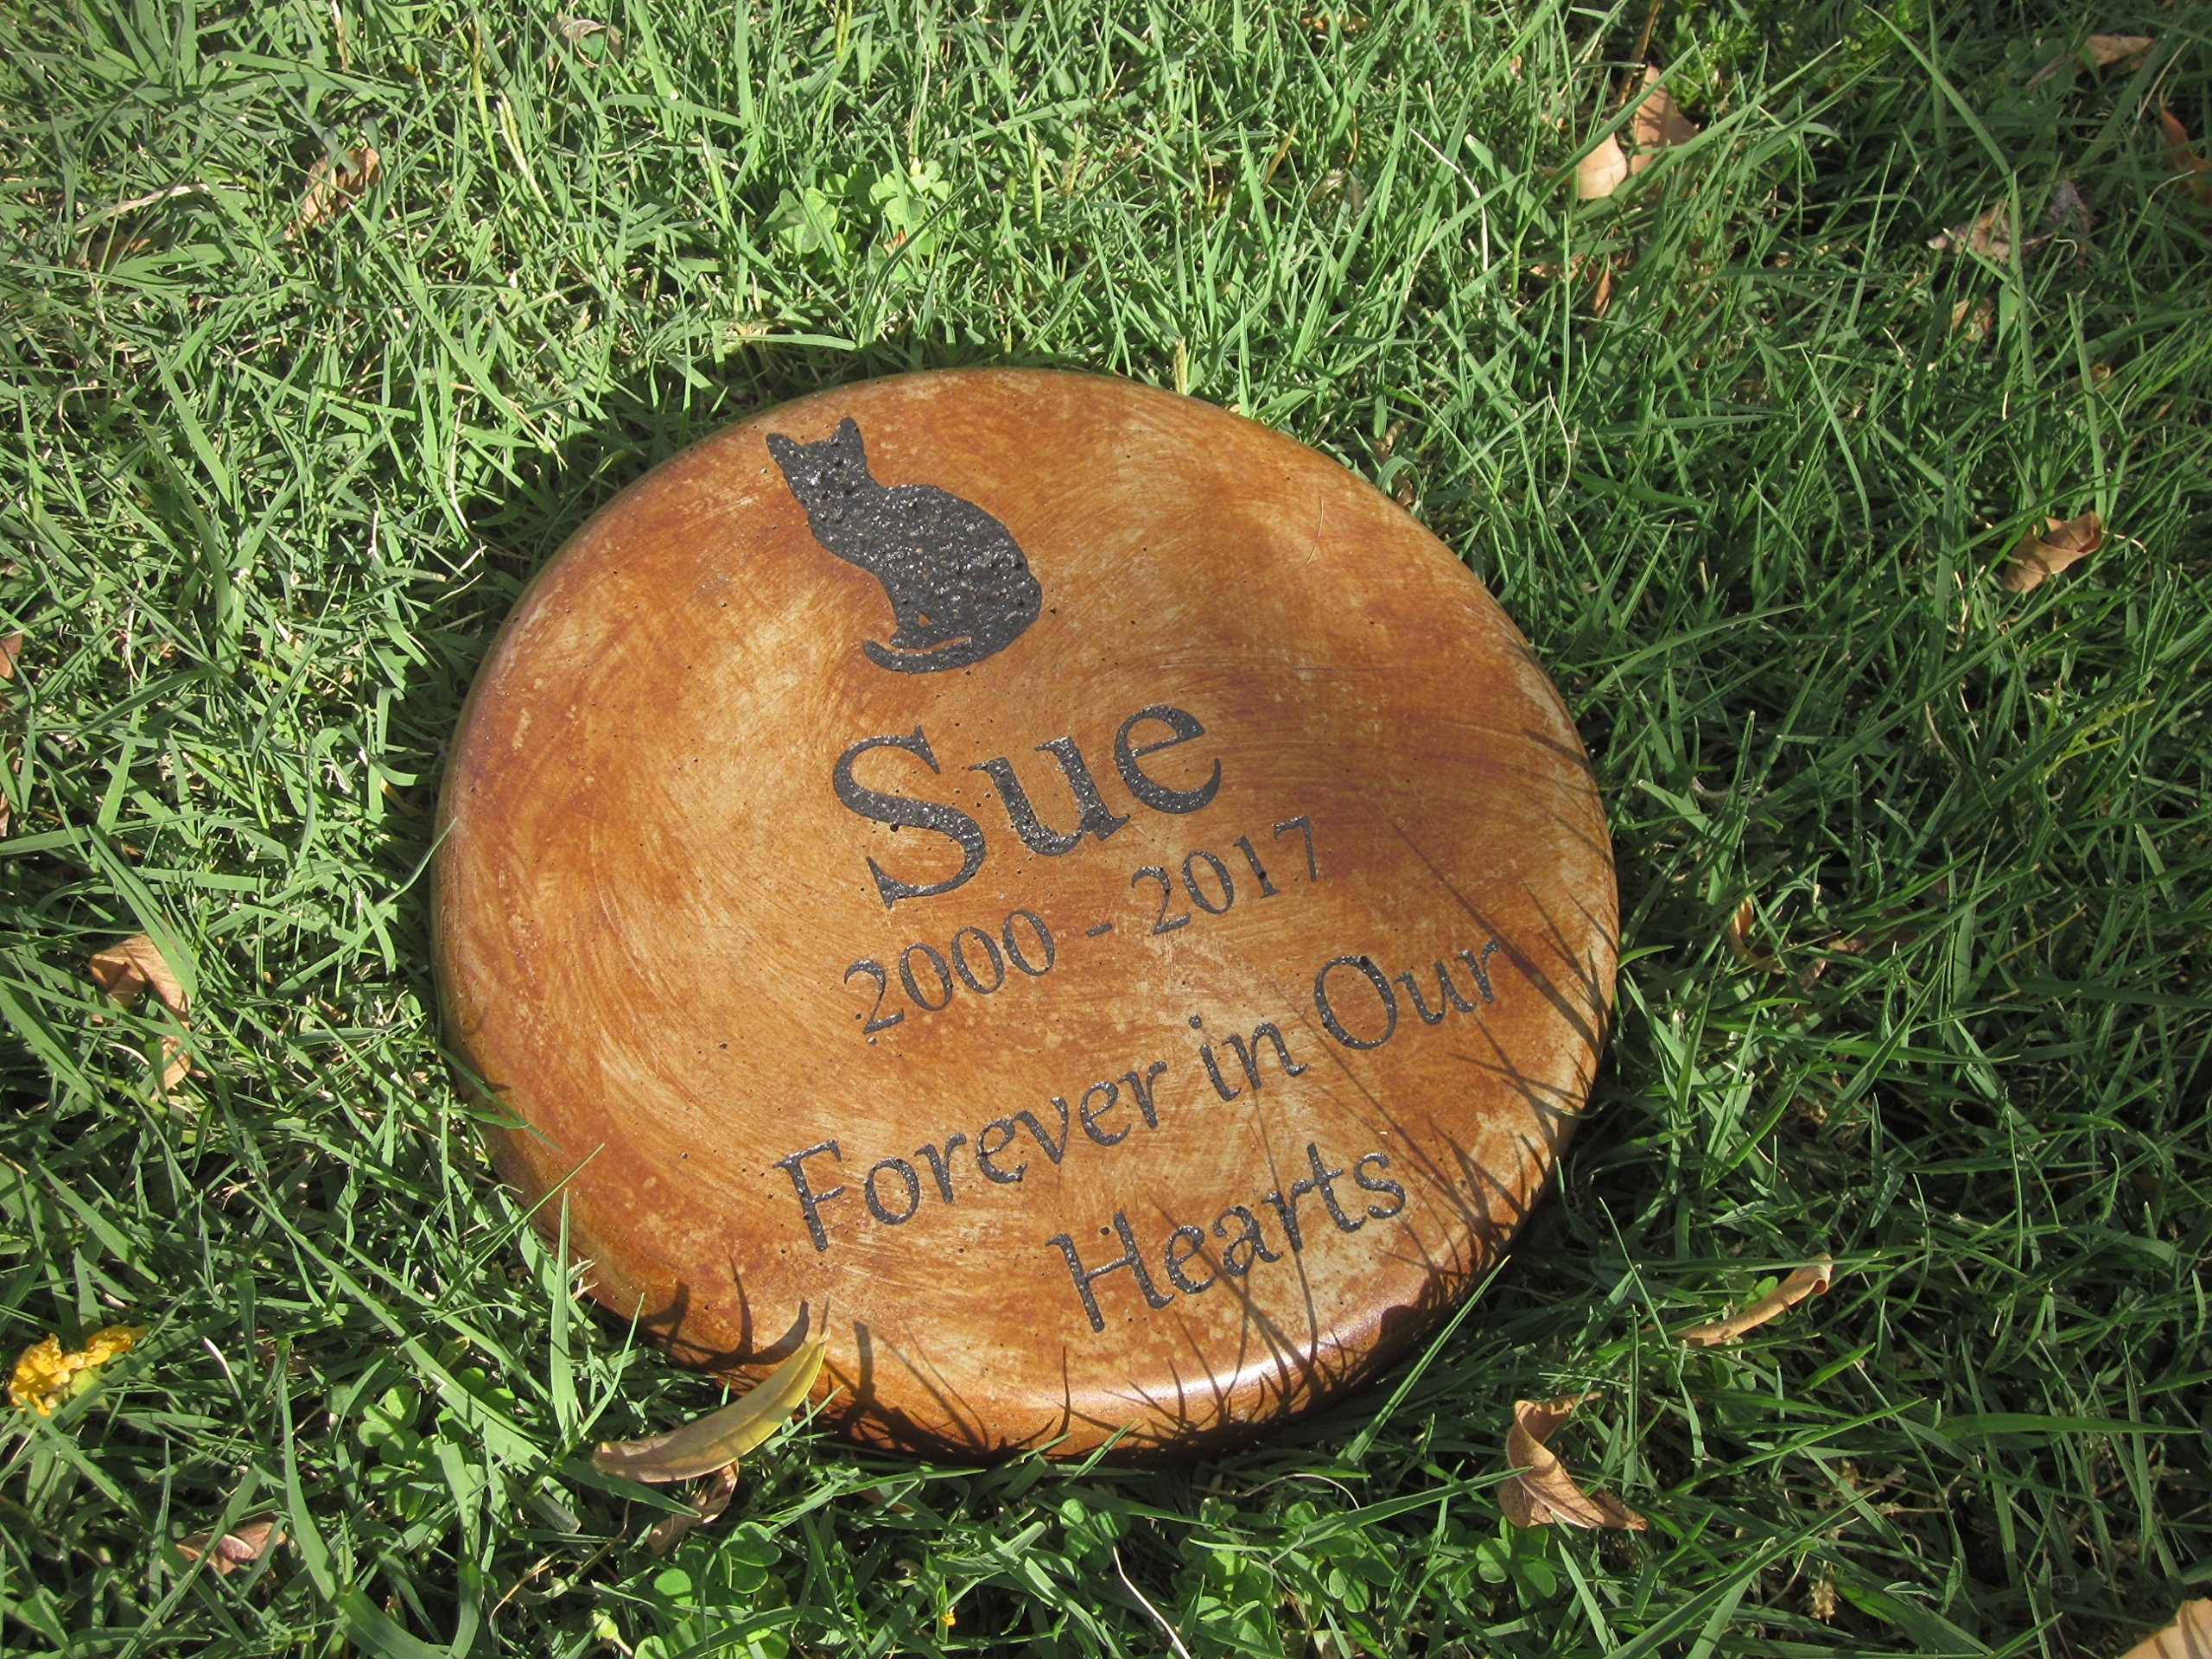 Personalized Engraved Pet Memorial Step Stone 7.5'' Diameter 'Forever in Our Hearts (cat) by Memories to Stone